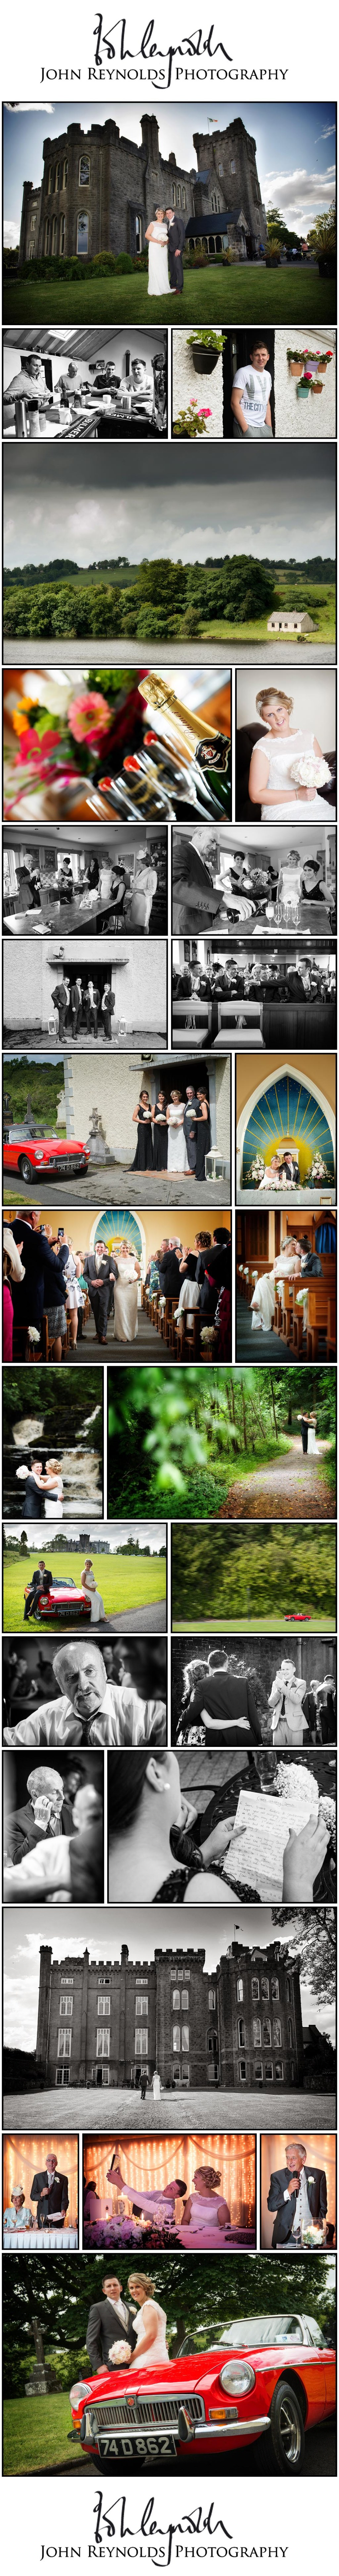 Blog Collage-Sharon & Matthew